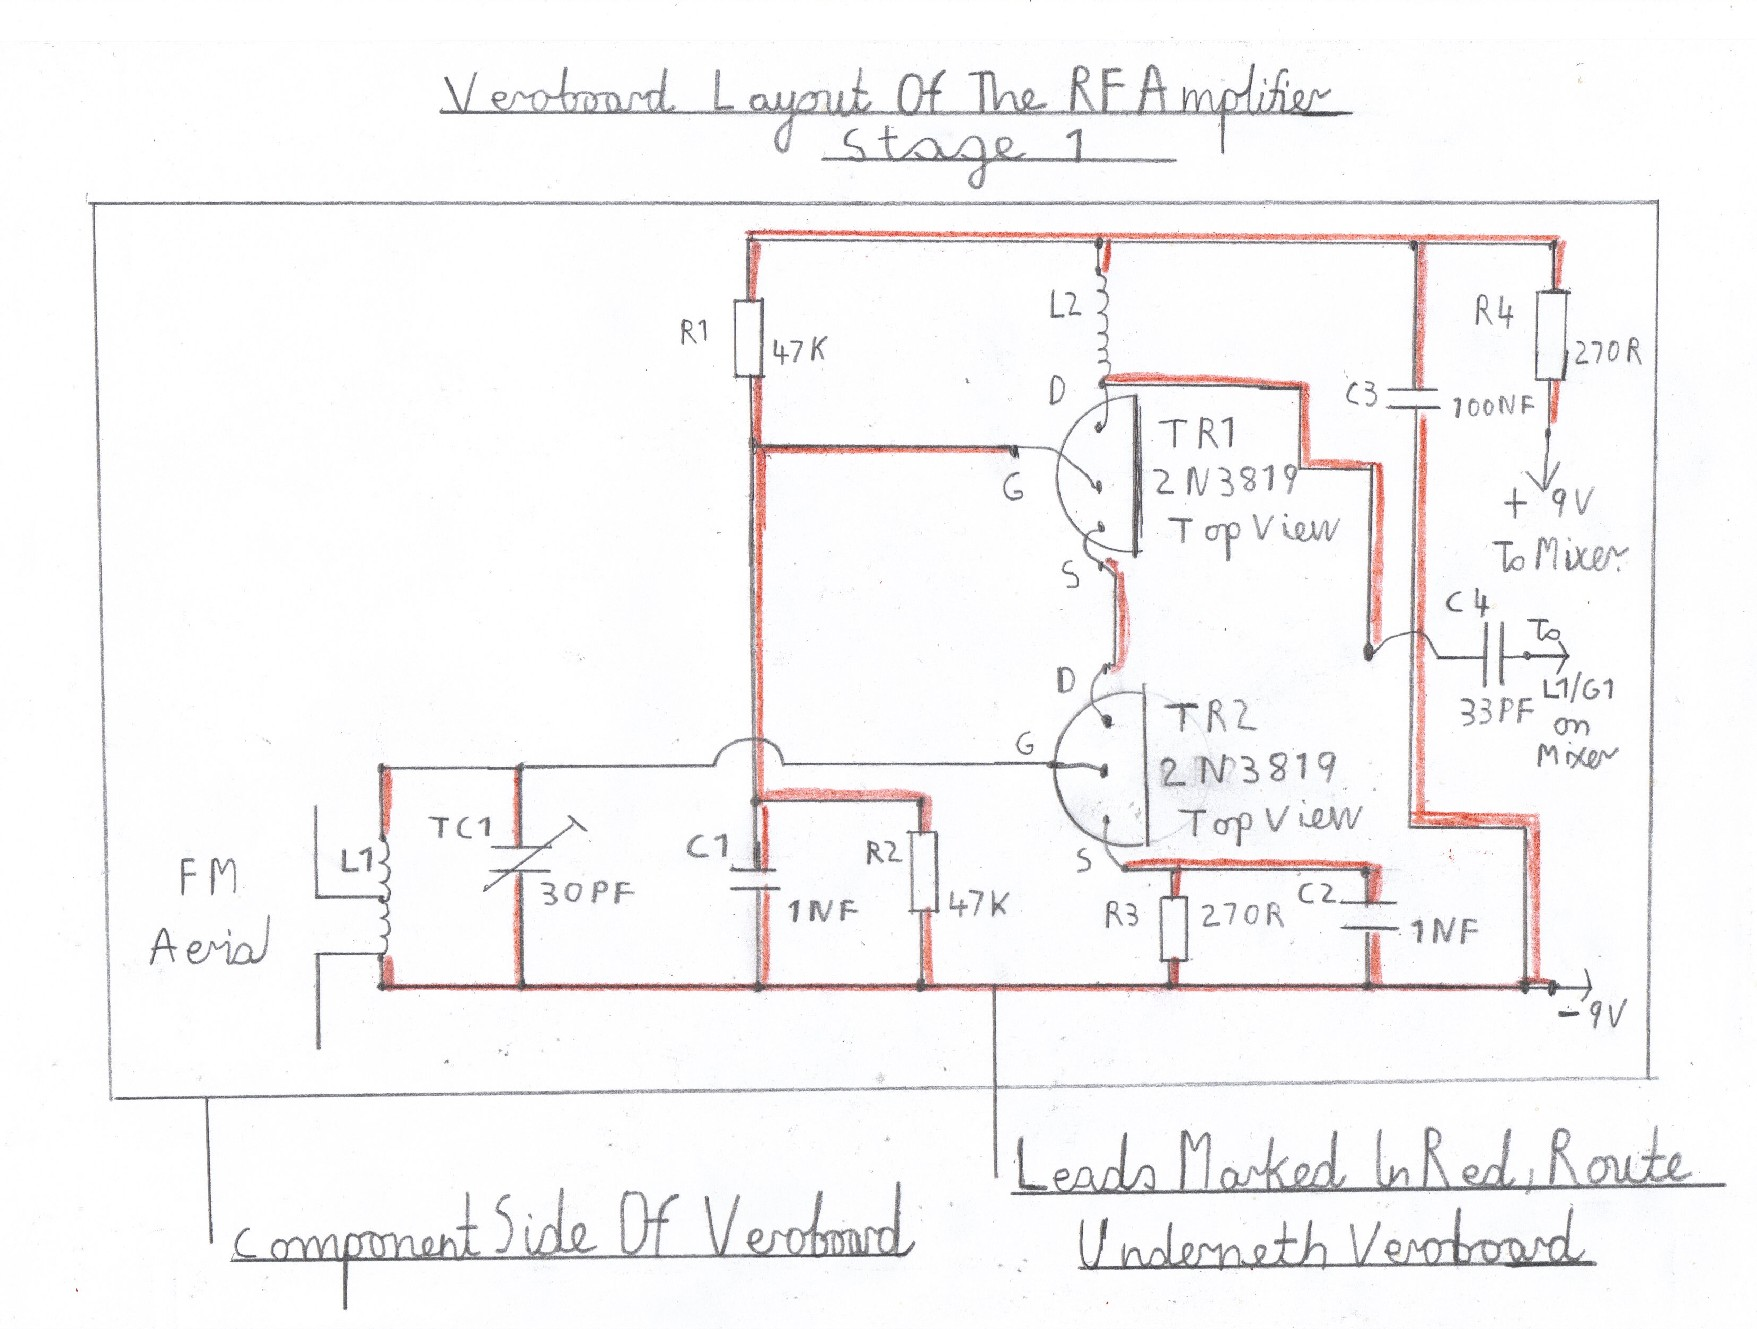 vhfrfampone transistor fm superhet receiver kitchen electrical wiring diagrams at soozxer.org